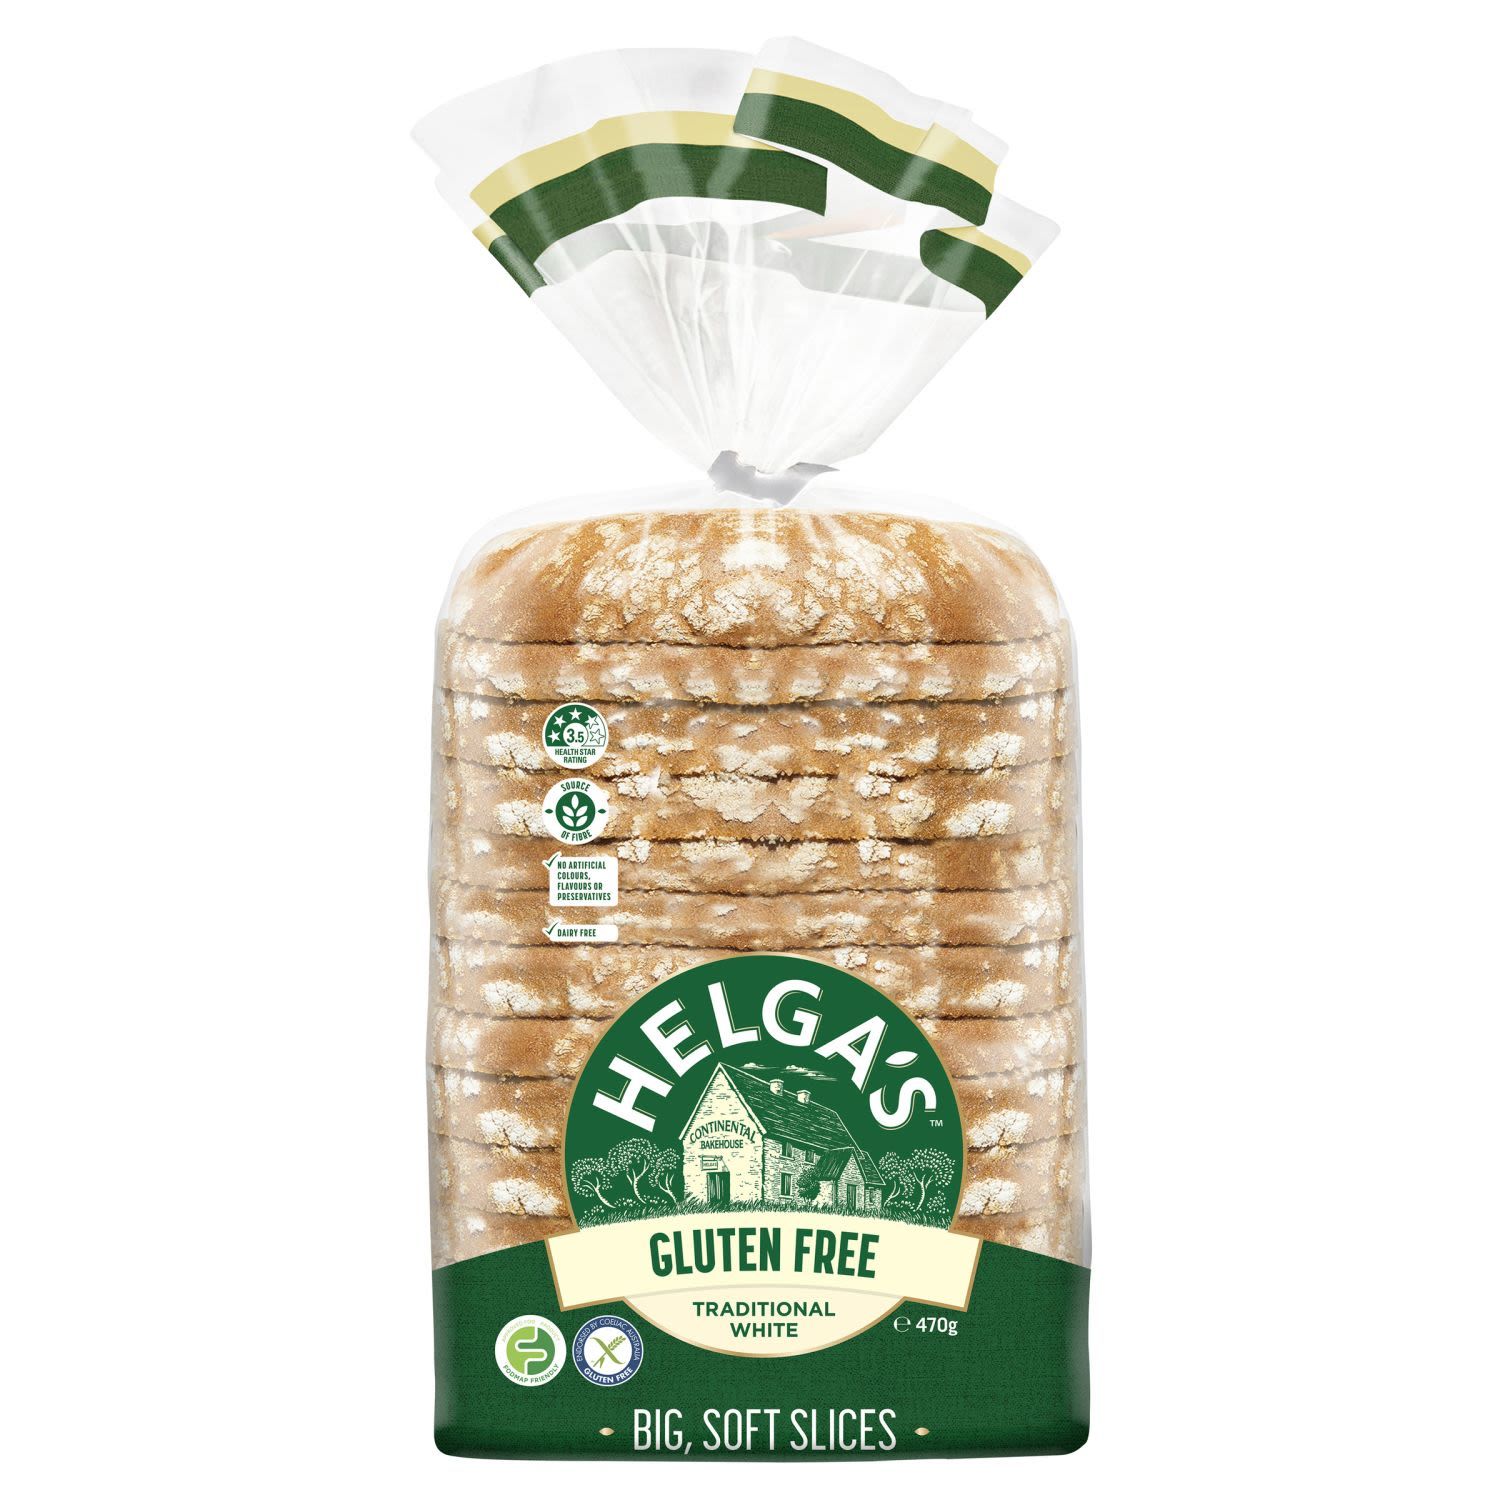 Helga's Gluten Free bread is full of all the good things you love about Helga's, without the gluten.  Helga's bakers bake our loaves with large slices so that you can enjoy satisfying sandwiches and toast everyday. Every slice is soft and delicious so sandwiches are back on the menu!  It's not just bread. It's Helga's®